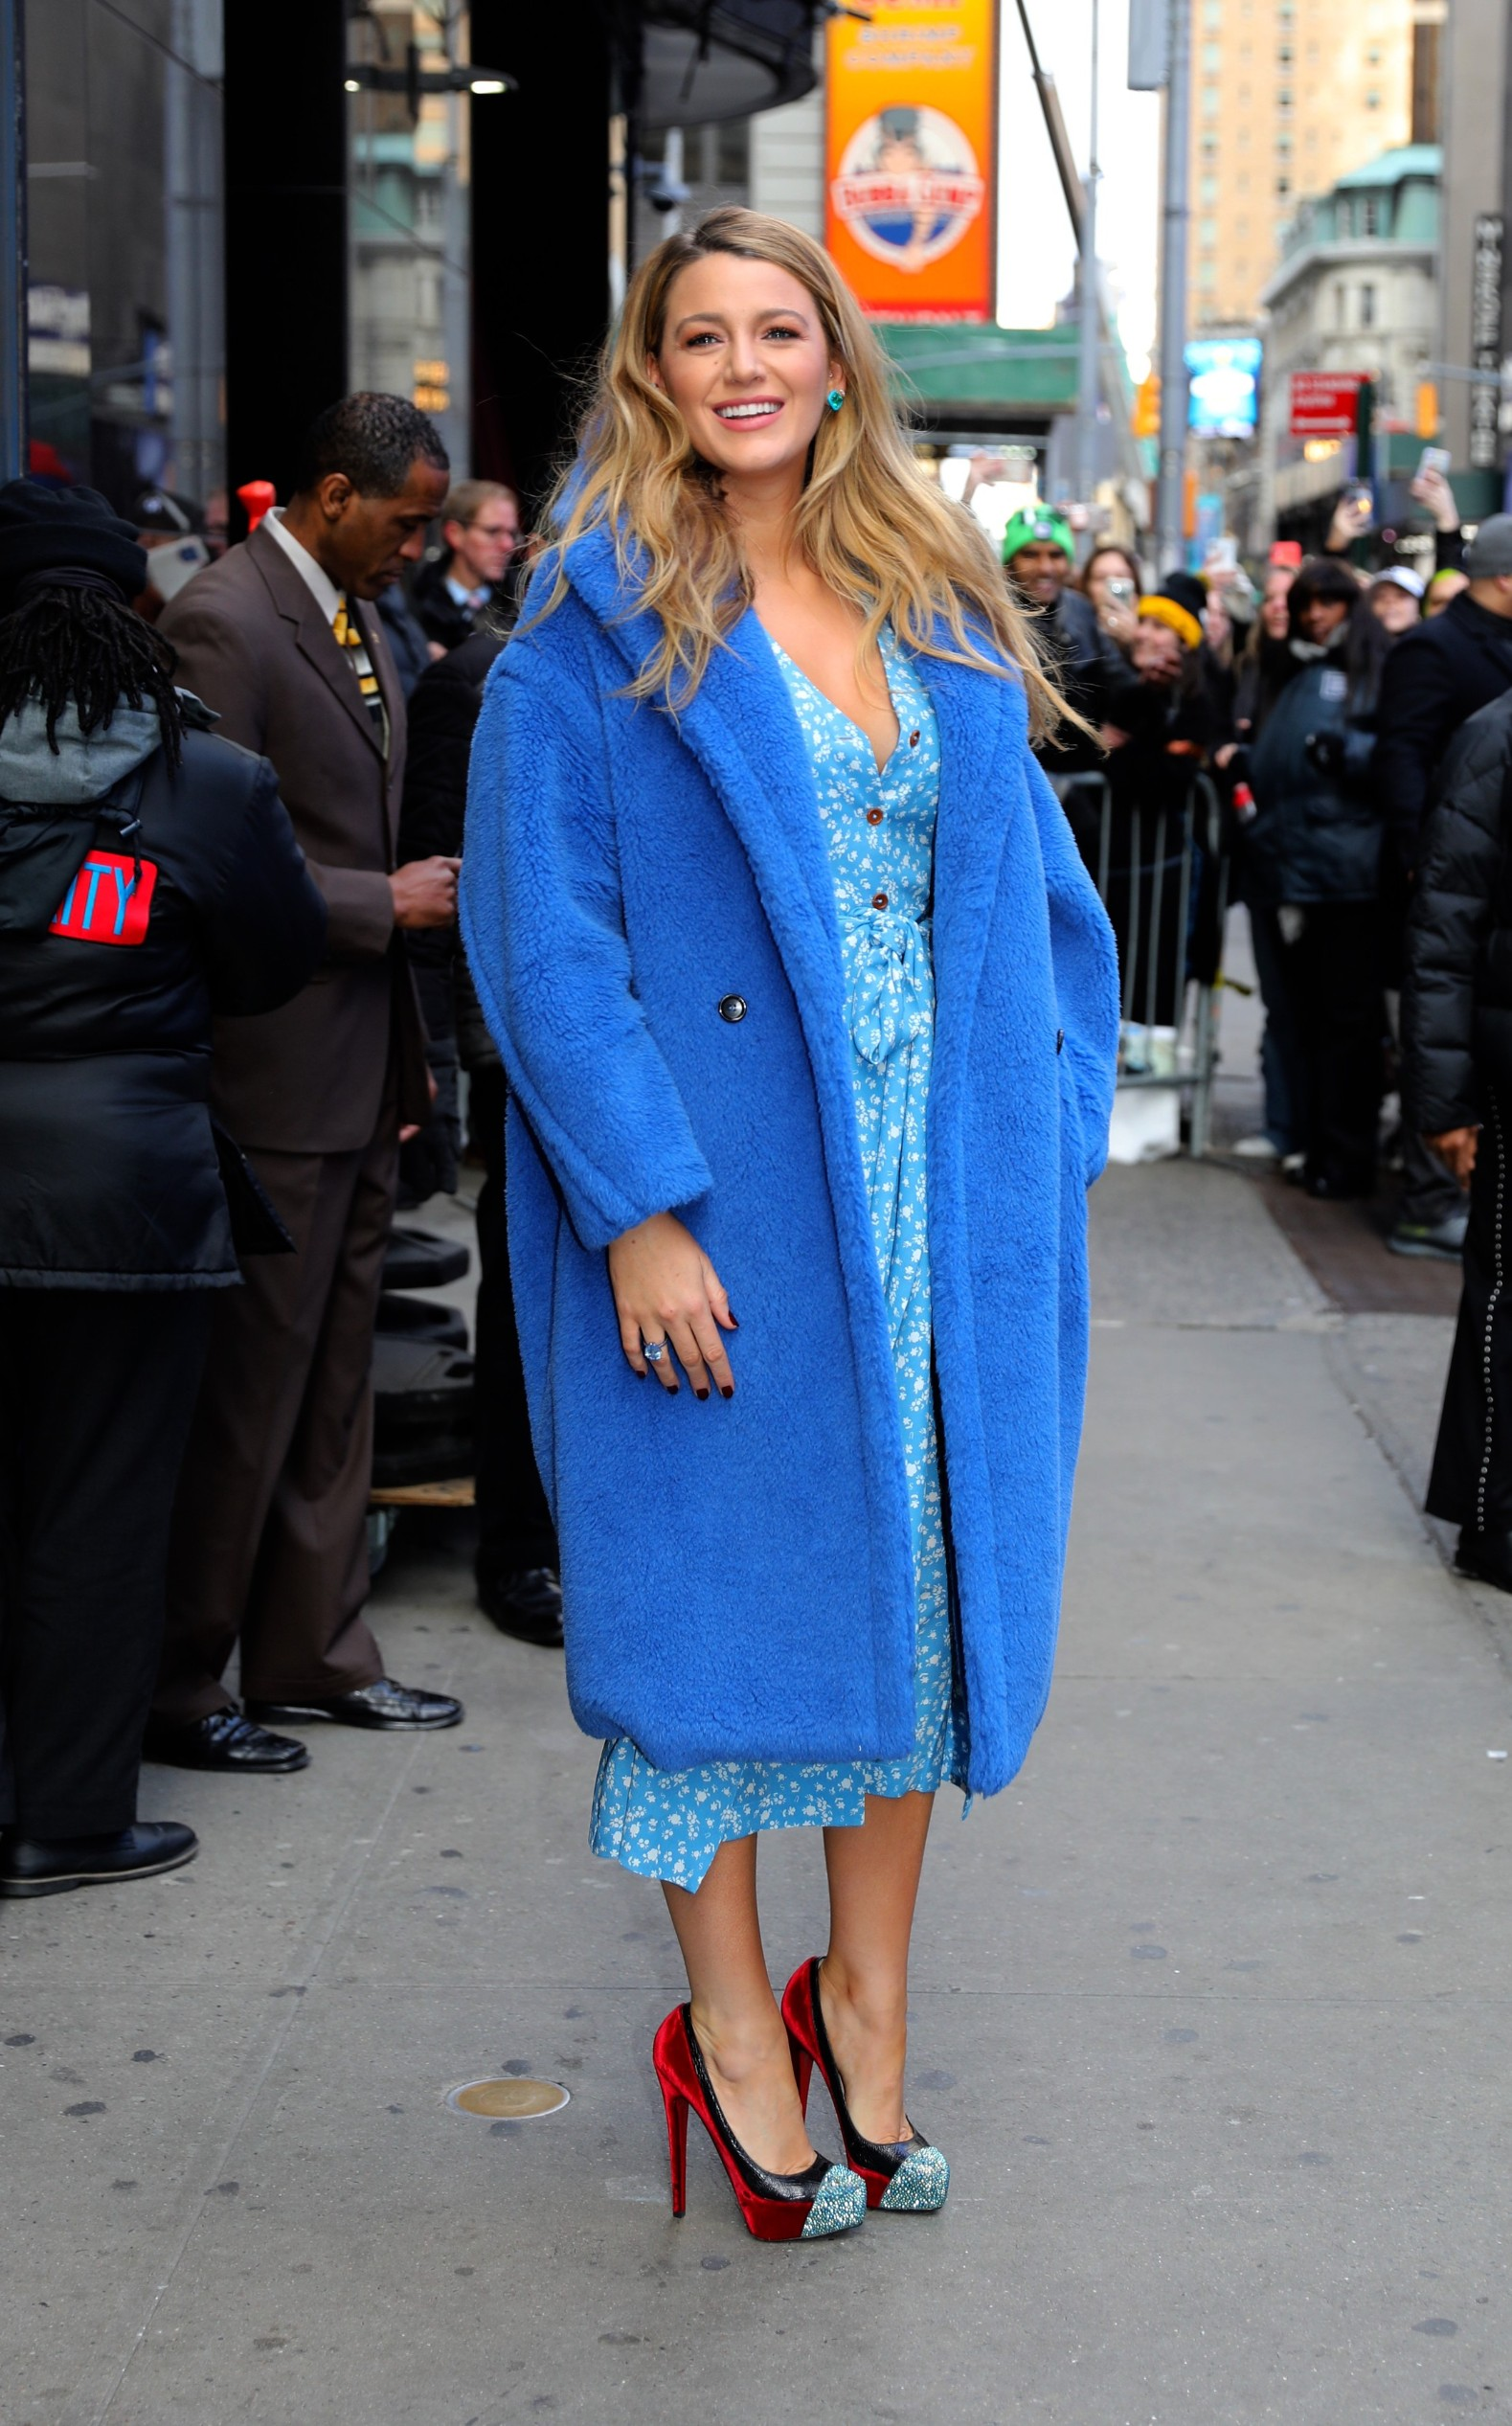 Blake Lively looks stunning in 3 different outfit changes as she promotes her new movie 'The Rhythm Section' in Uptown, Manhattan. New York City, New York - Tuesday January 28, 2020., Image: 495325052, License: Rights-managed, Restrictions: N, Model Release: no, Credit line: JP/PacificCoastNews / Pacific coast news / Profimedia